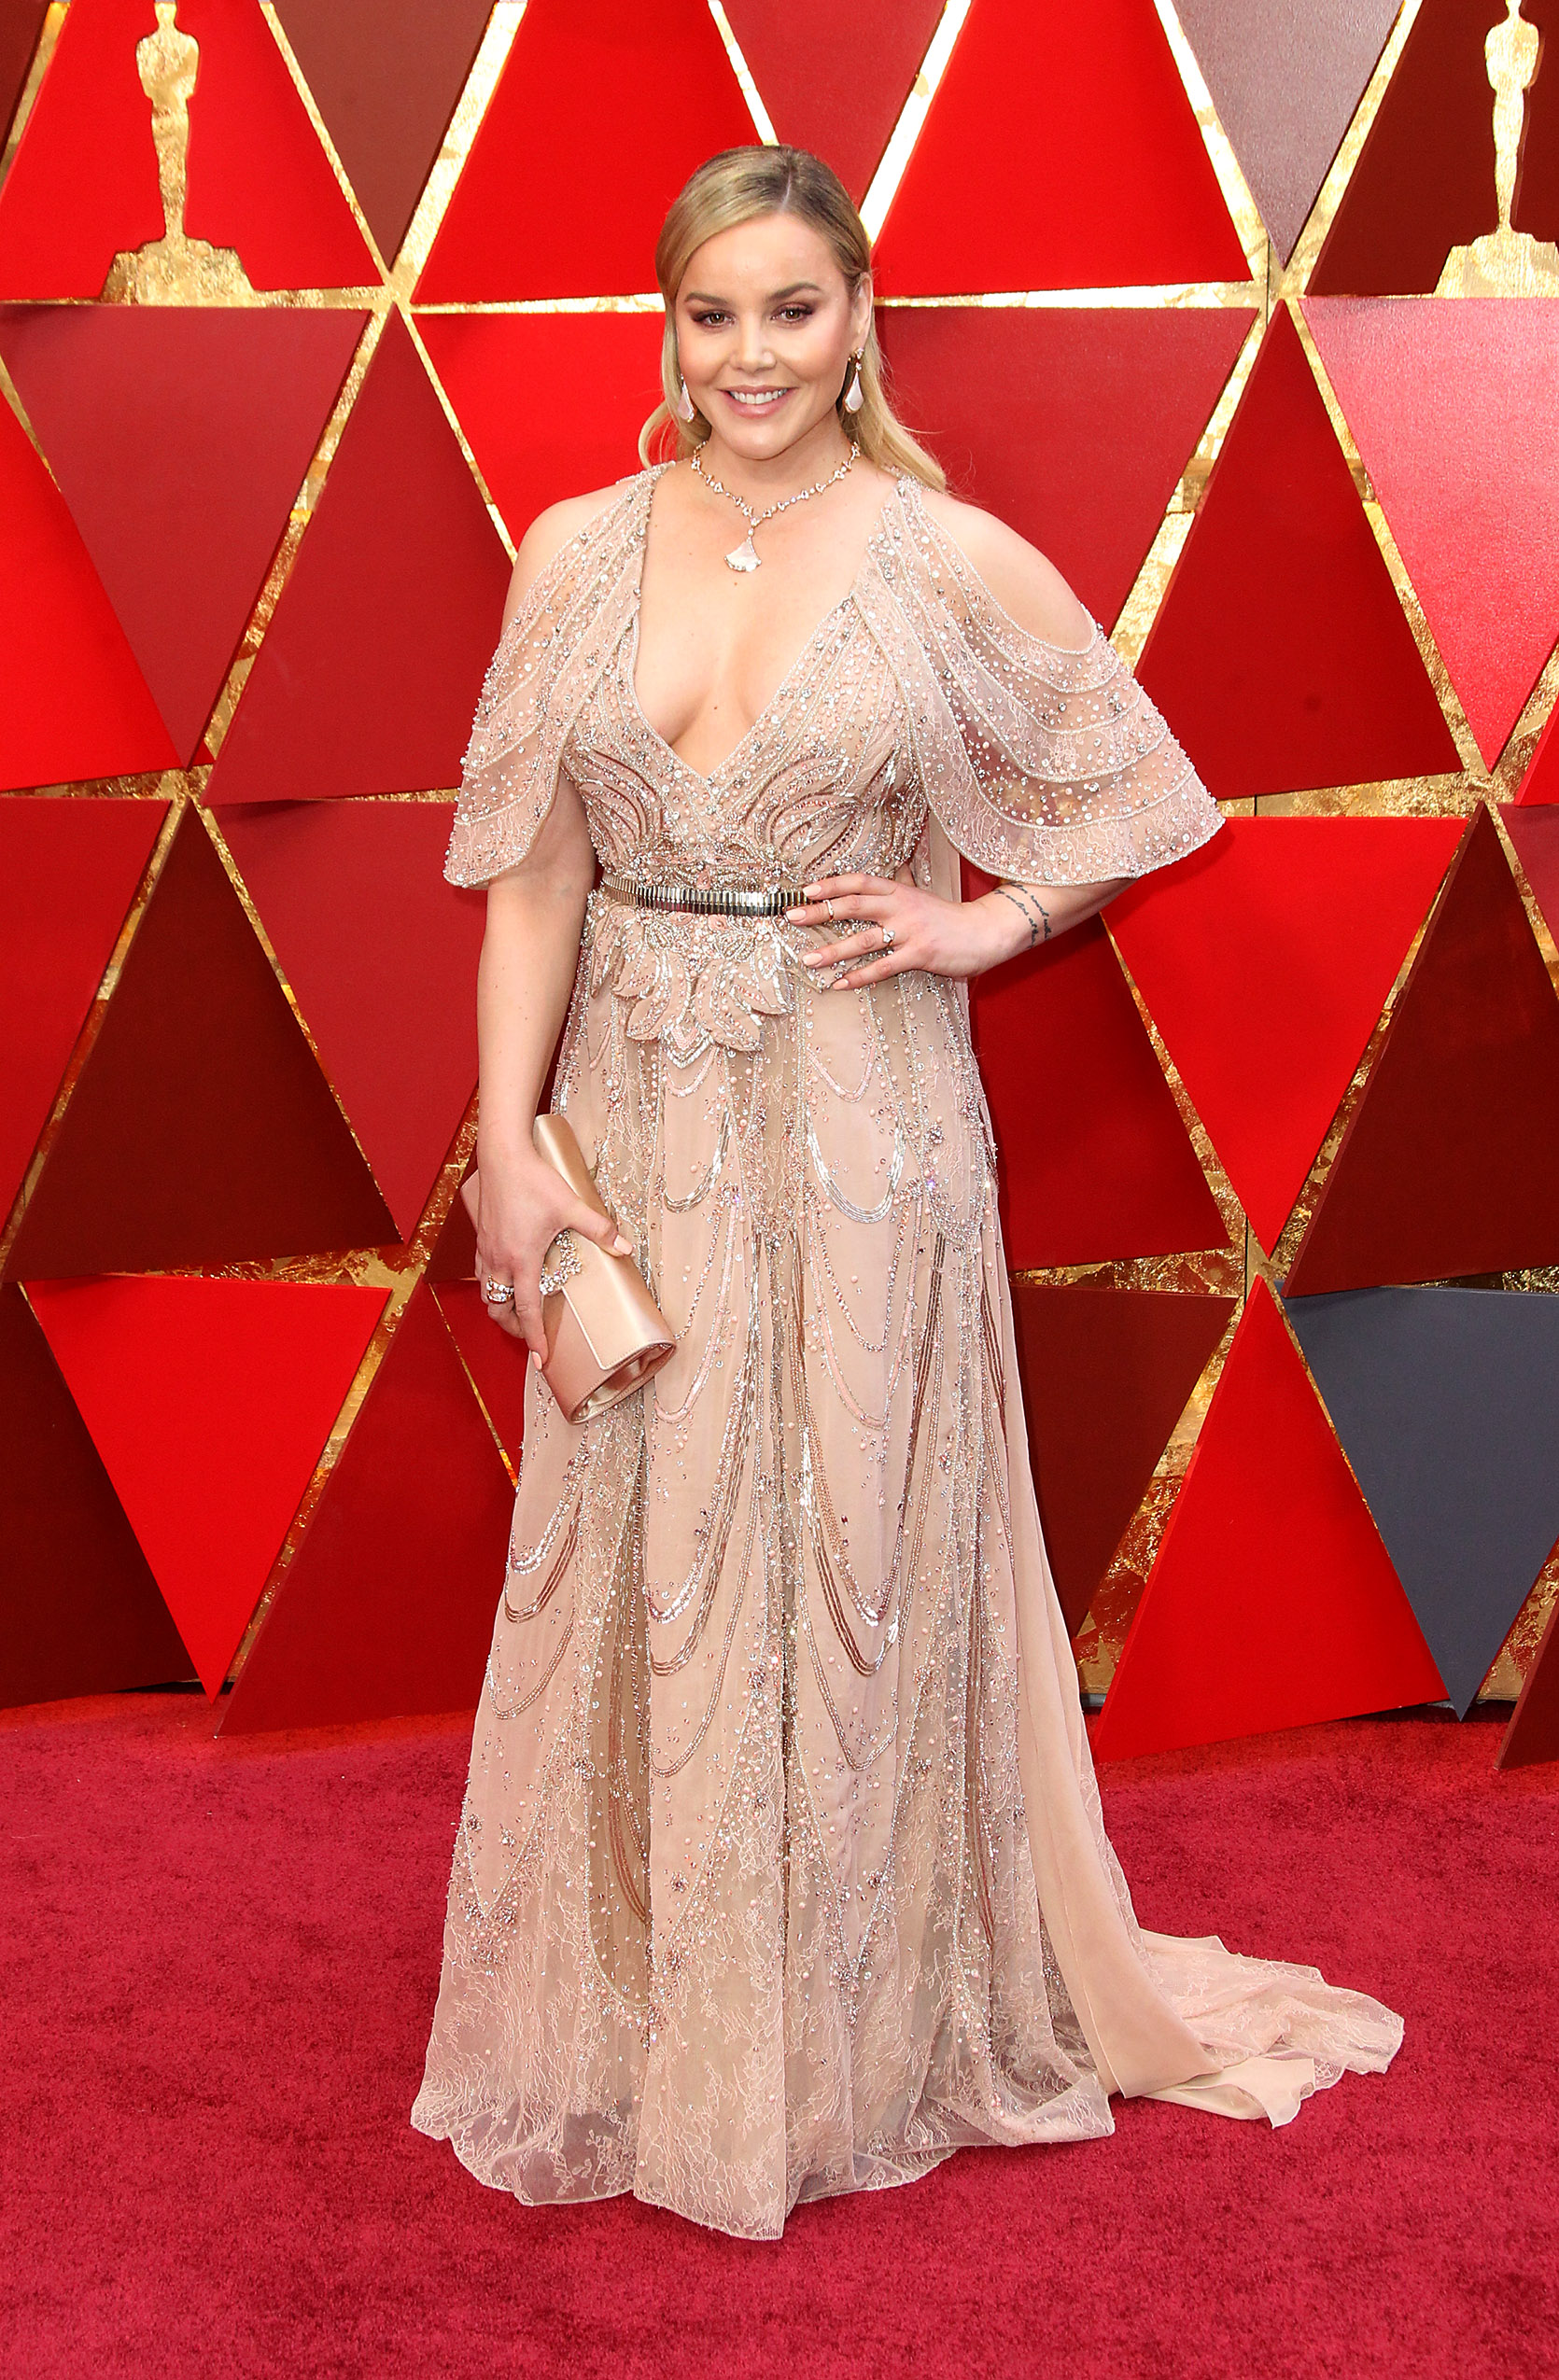 Abbie Cornish arrives at the 90th Annual Academy Awards (Oscars) held at the Dolby Theater in Hollywood, California. (Image: Adriana M. Barraza/WENN.com)<p></p>